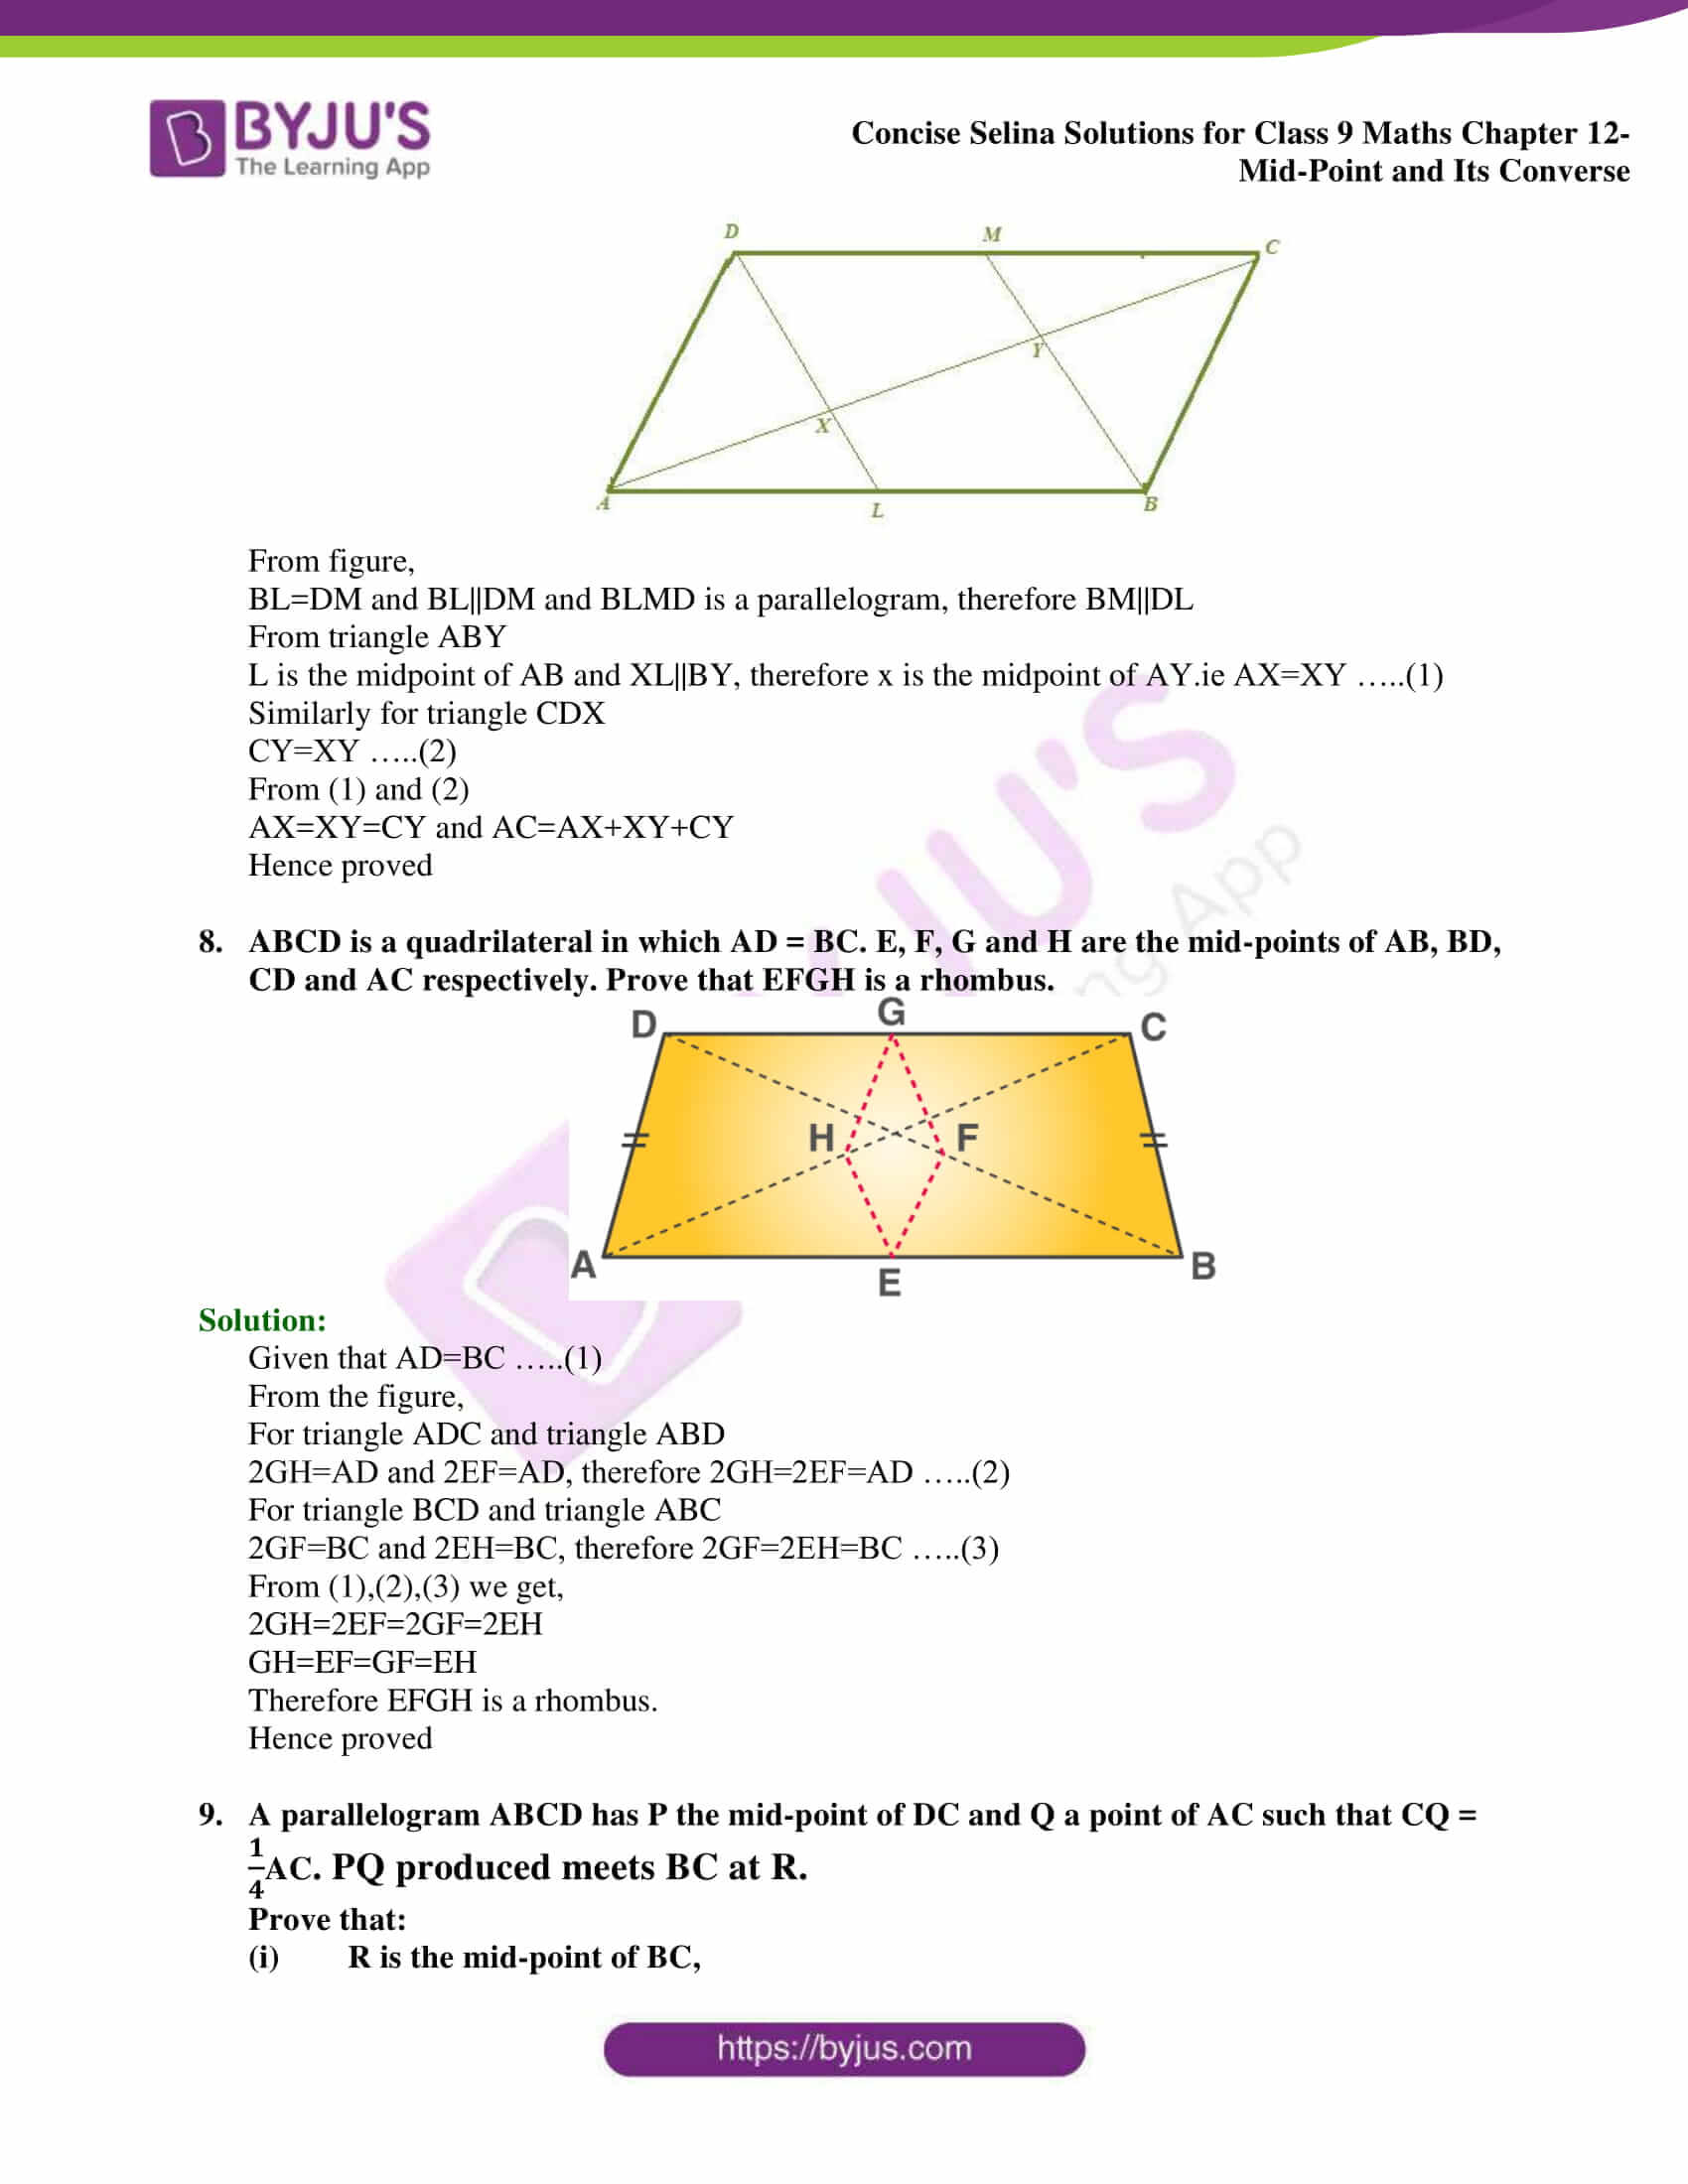 selina Solutions for Class 9 Maths Chapter 12 part 05